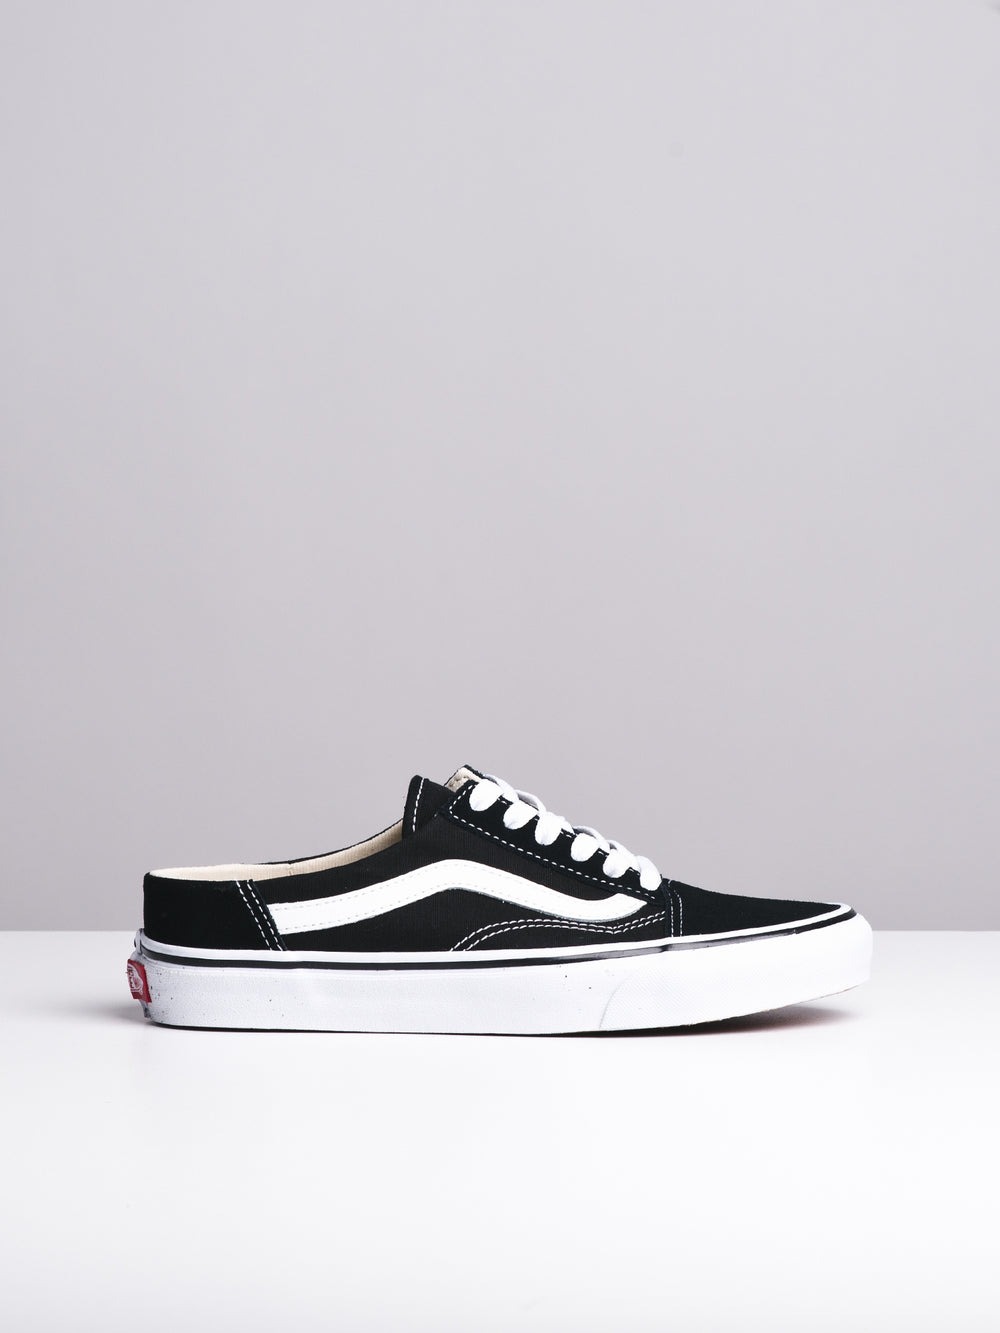 6af7f883cce WOMENS OLD SKOOL MULE BLACK WHITE CANVAS SHOES- CLEARANCE ...